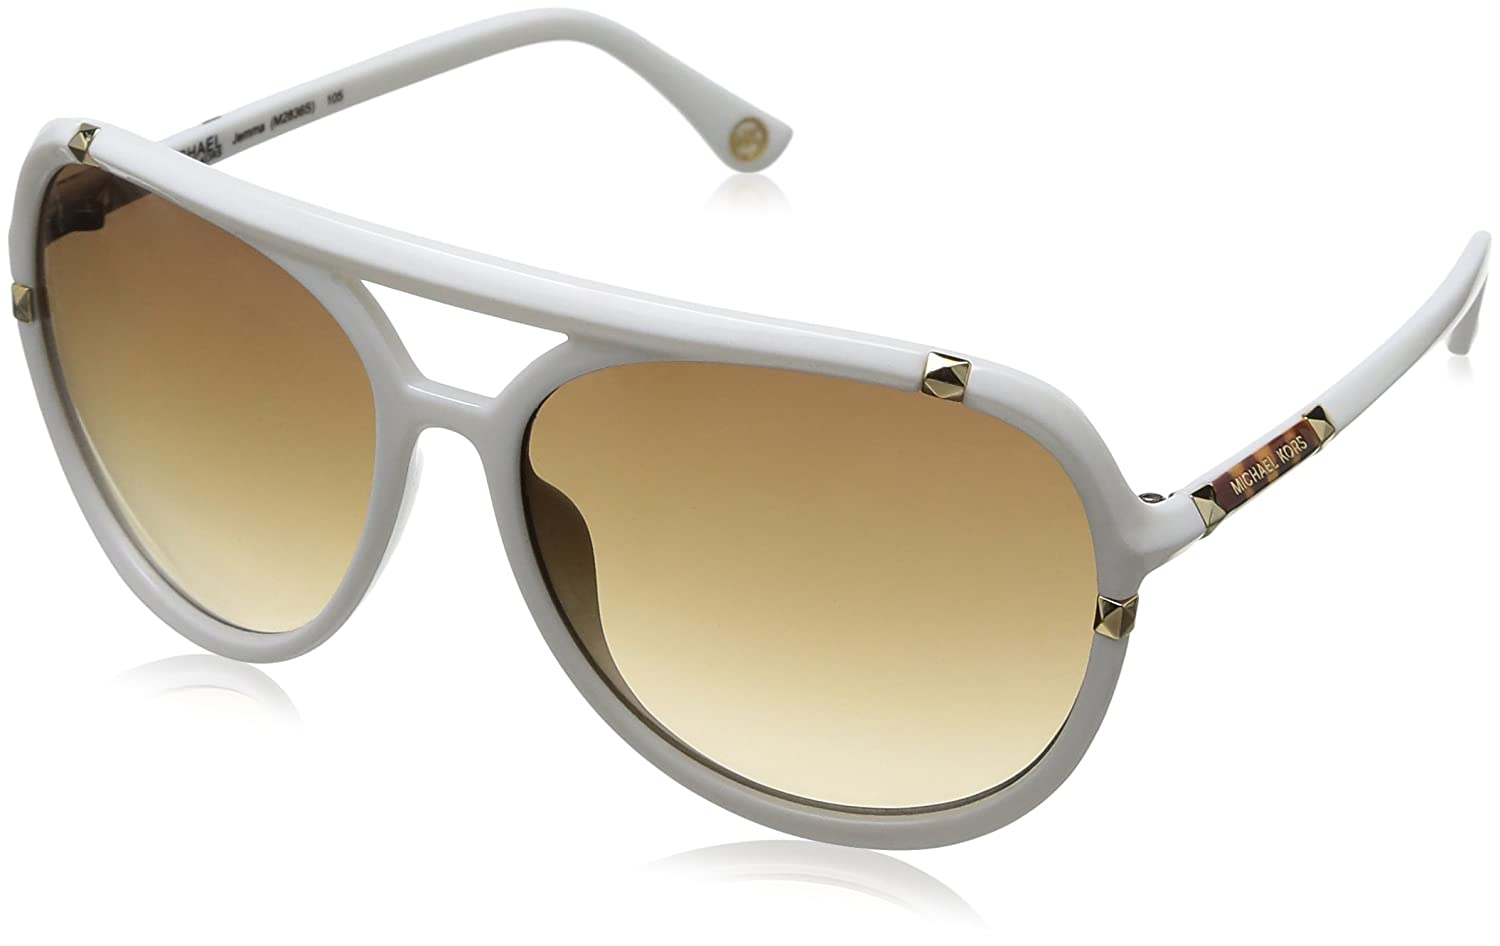 1c23967f7510 Michael Kors Women's M2836S Oversized Sunglasses, White frame / Brown lens  (105): Amazon.co.uk: Clothing